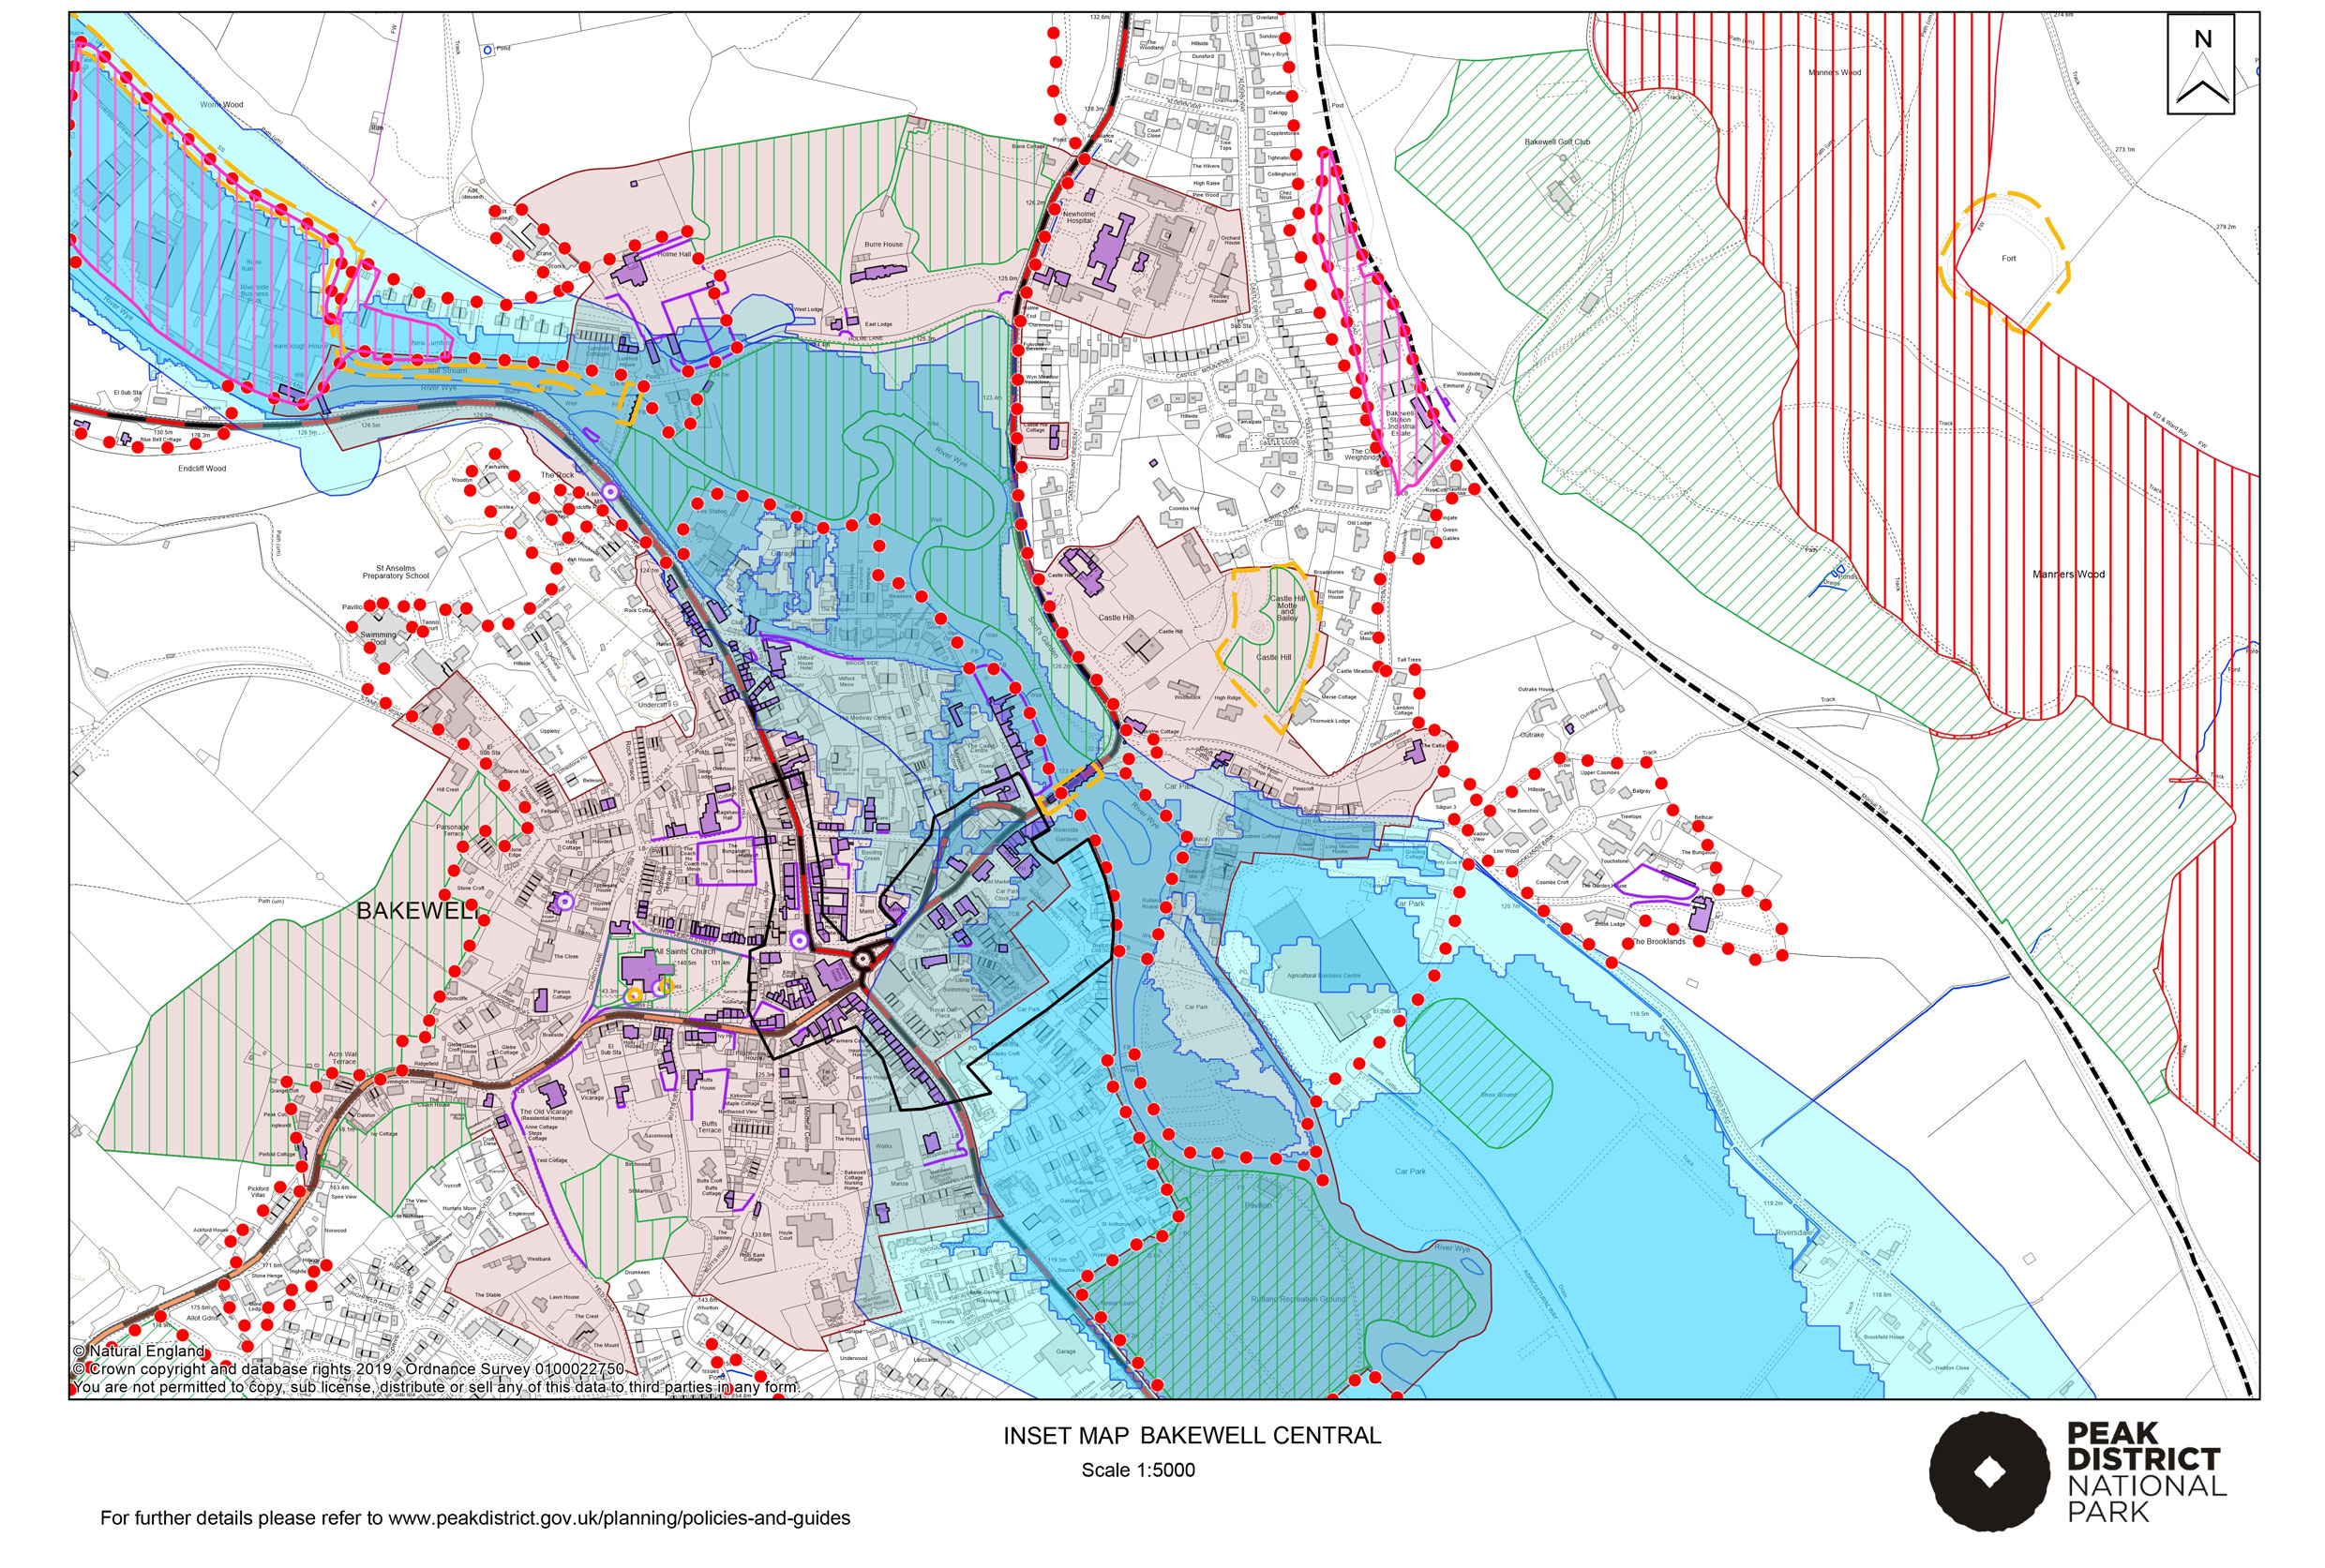 Local Plan Proposals Map: Bakewell Central